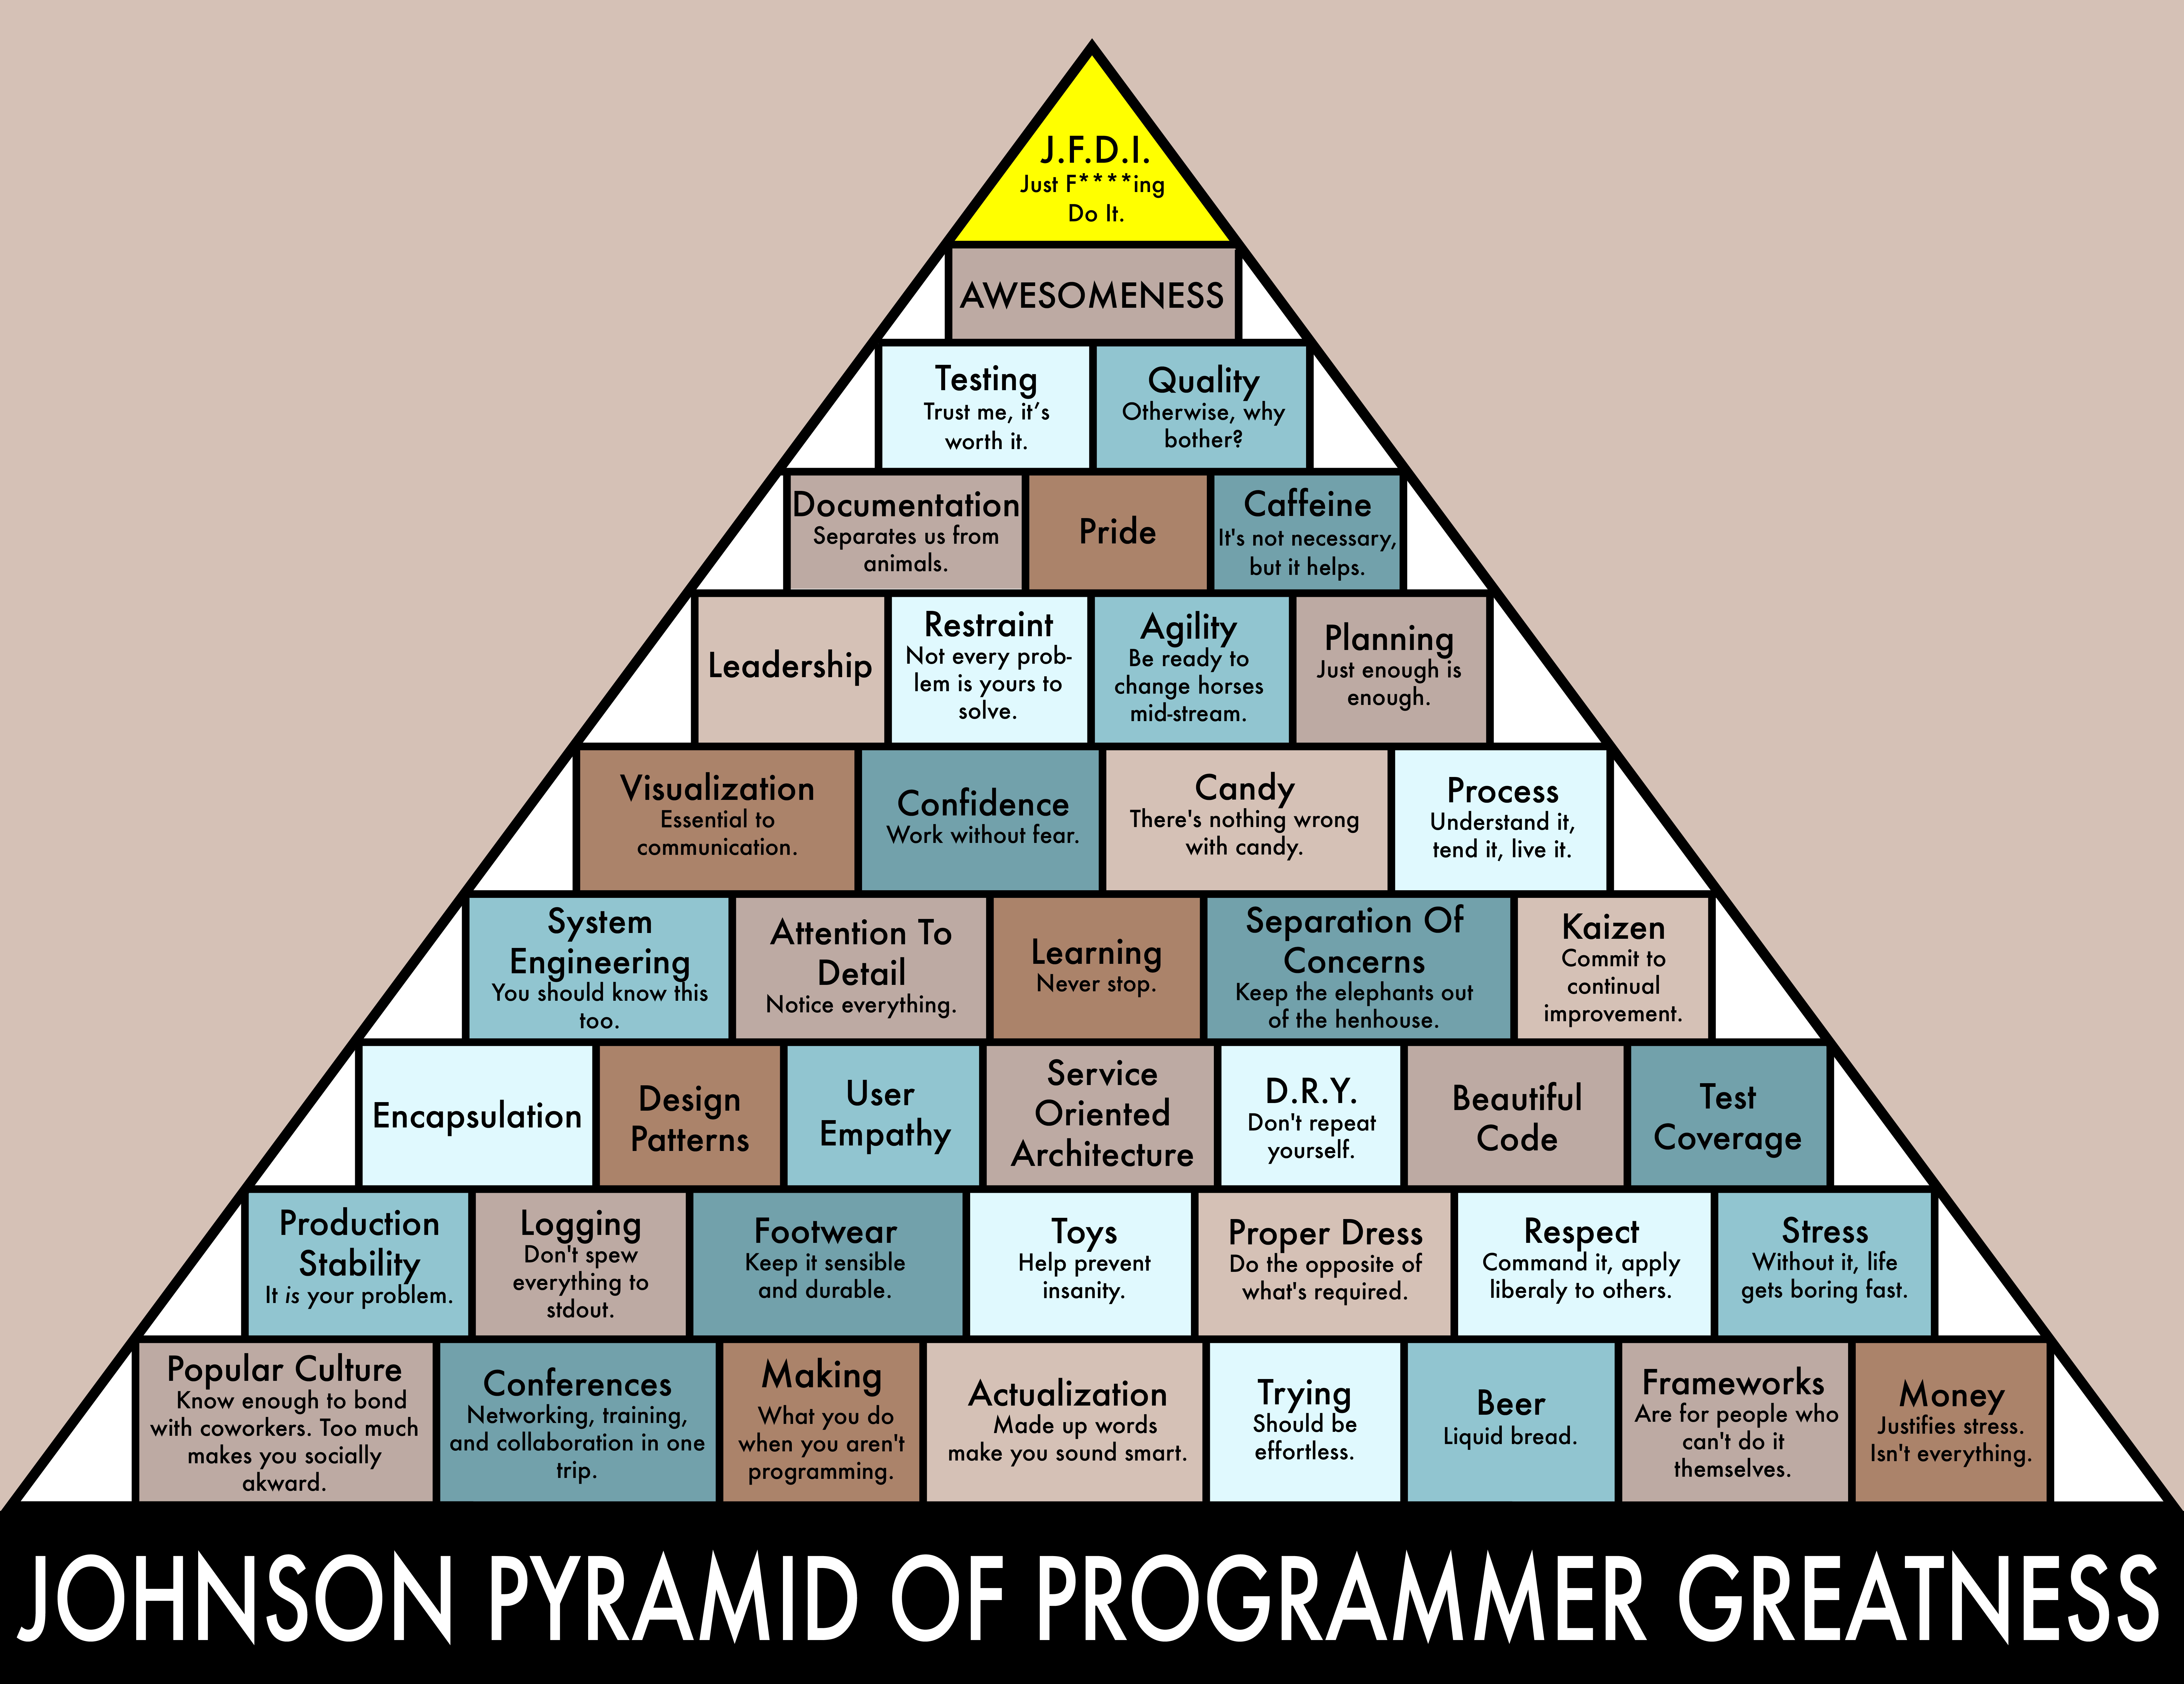 image about Ron Swanson Pyramid of Greatness Printable Version identified as The Johnson Pyramid Of Programmer Greatness - The Gathered